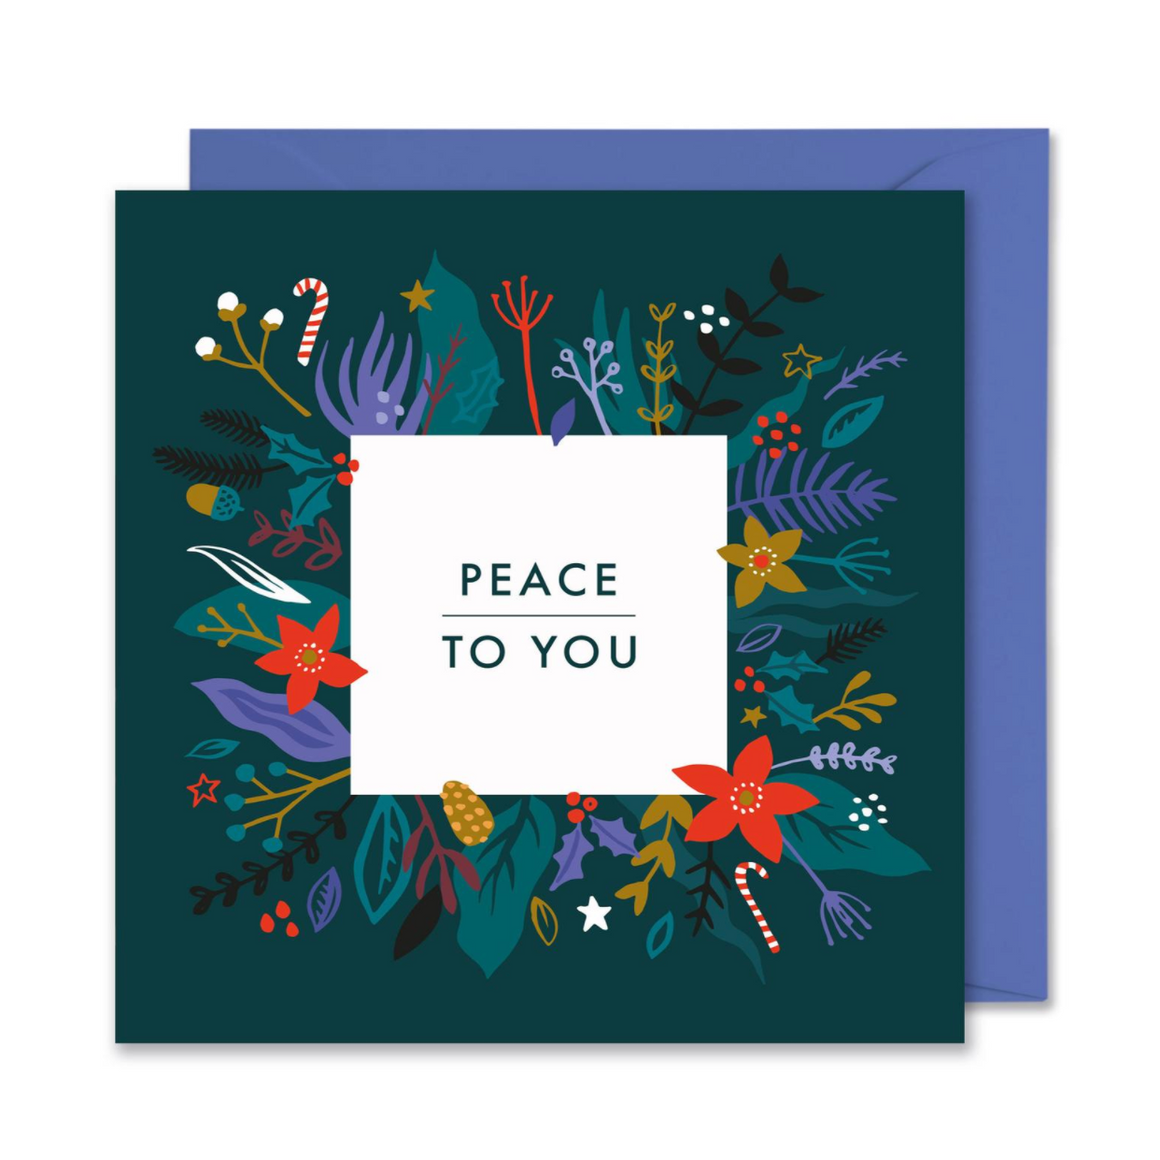 PEACE TO YOU CHRISTMAS CARD